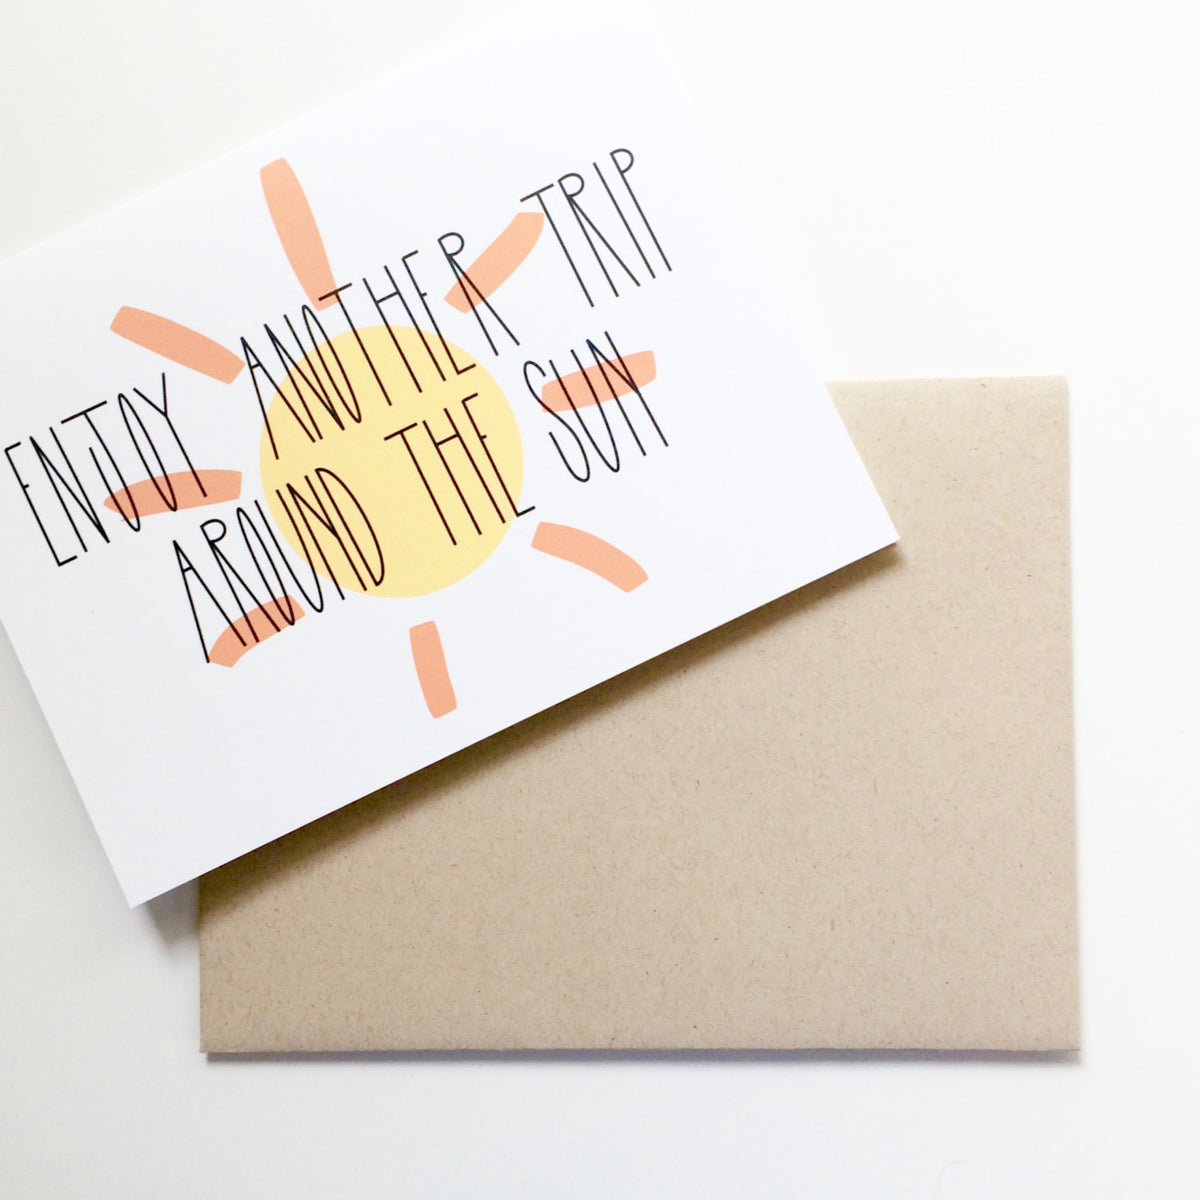 Trip around the sun birthday greeting card